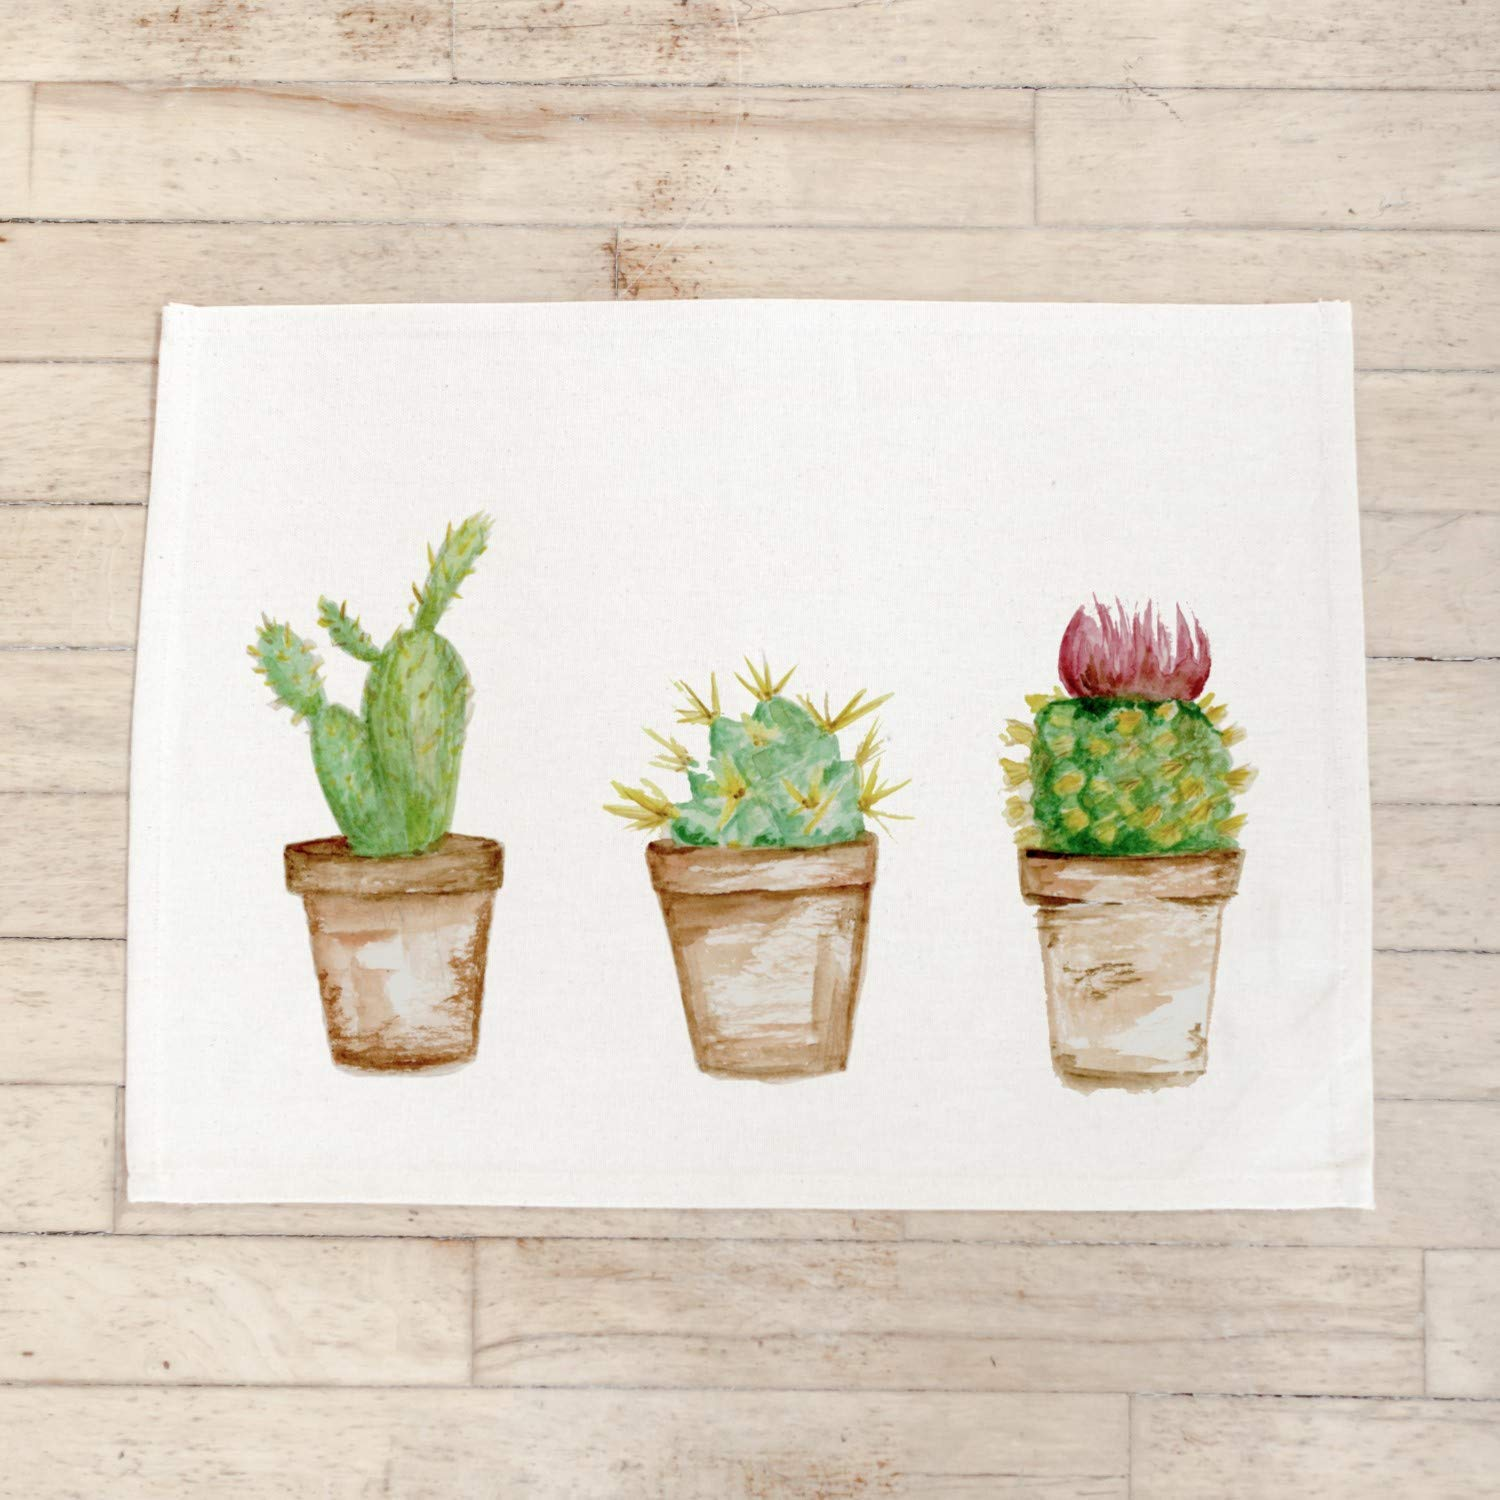 Max 58% OFF Japan's largest assortment Placemat Set - Cactus Watercolor Handmade home USA dec in the